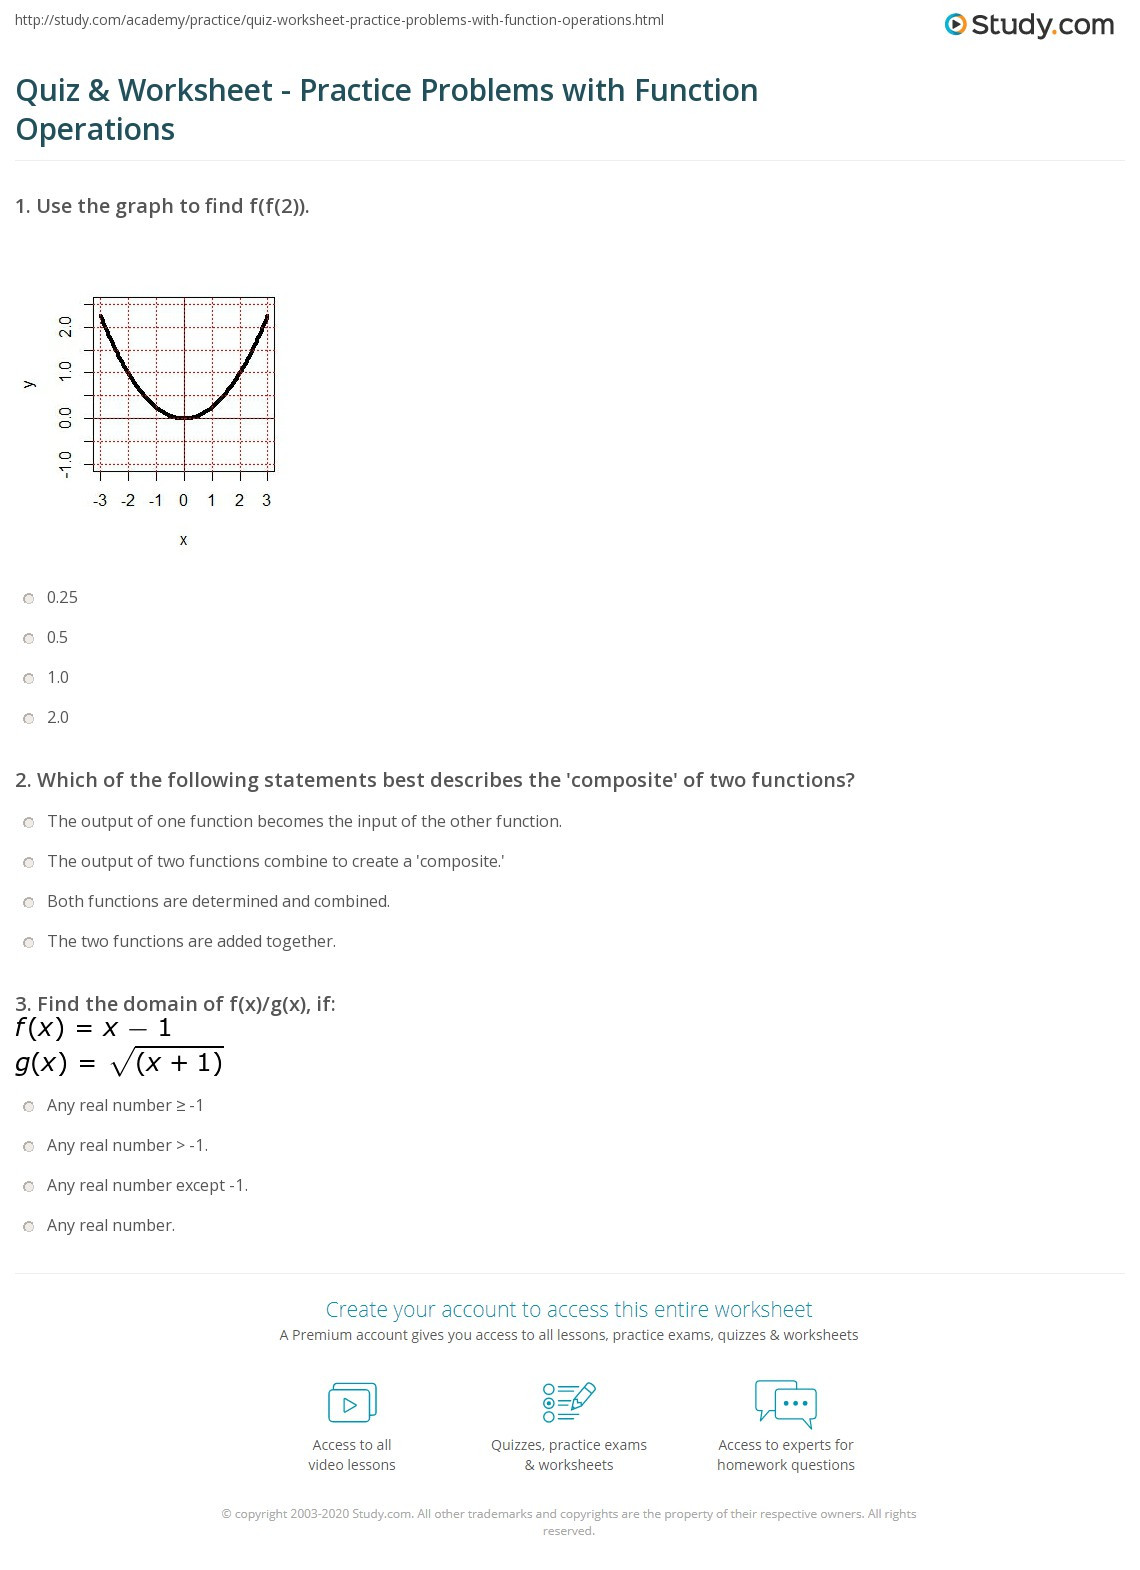 Operations with Functions Worksheet Quiz & Worksheet Practice Problems with Function